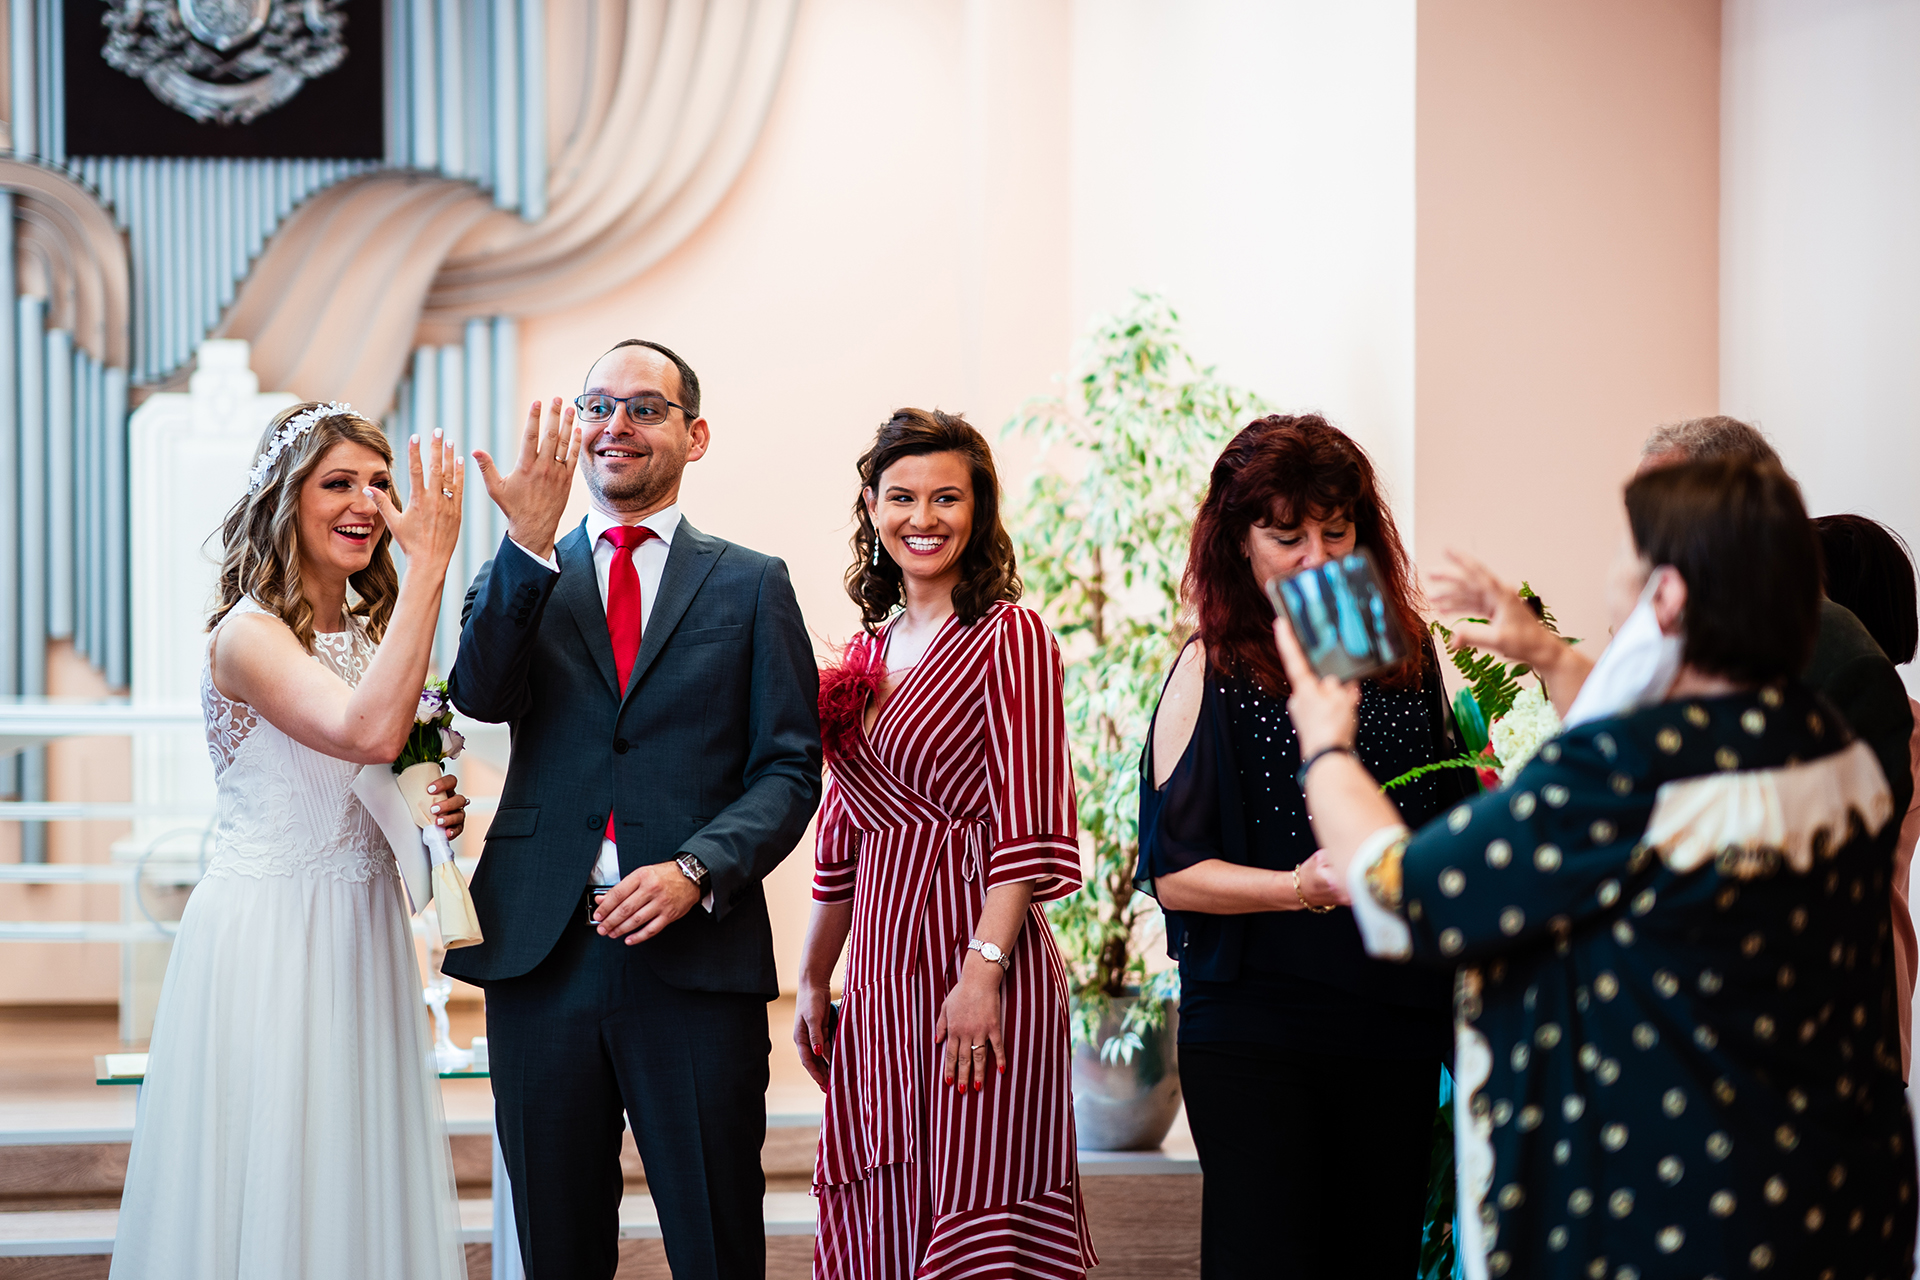 Sofia City Hall, Bulgaria Elopement Ceremony Photography | The newlyweds are happy to show their wedding rings